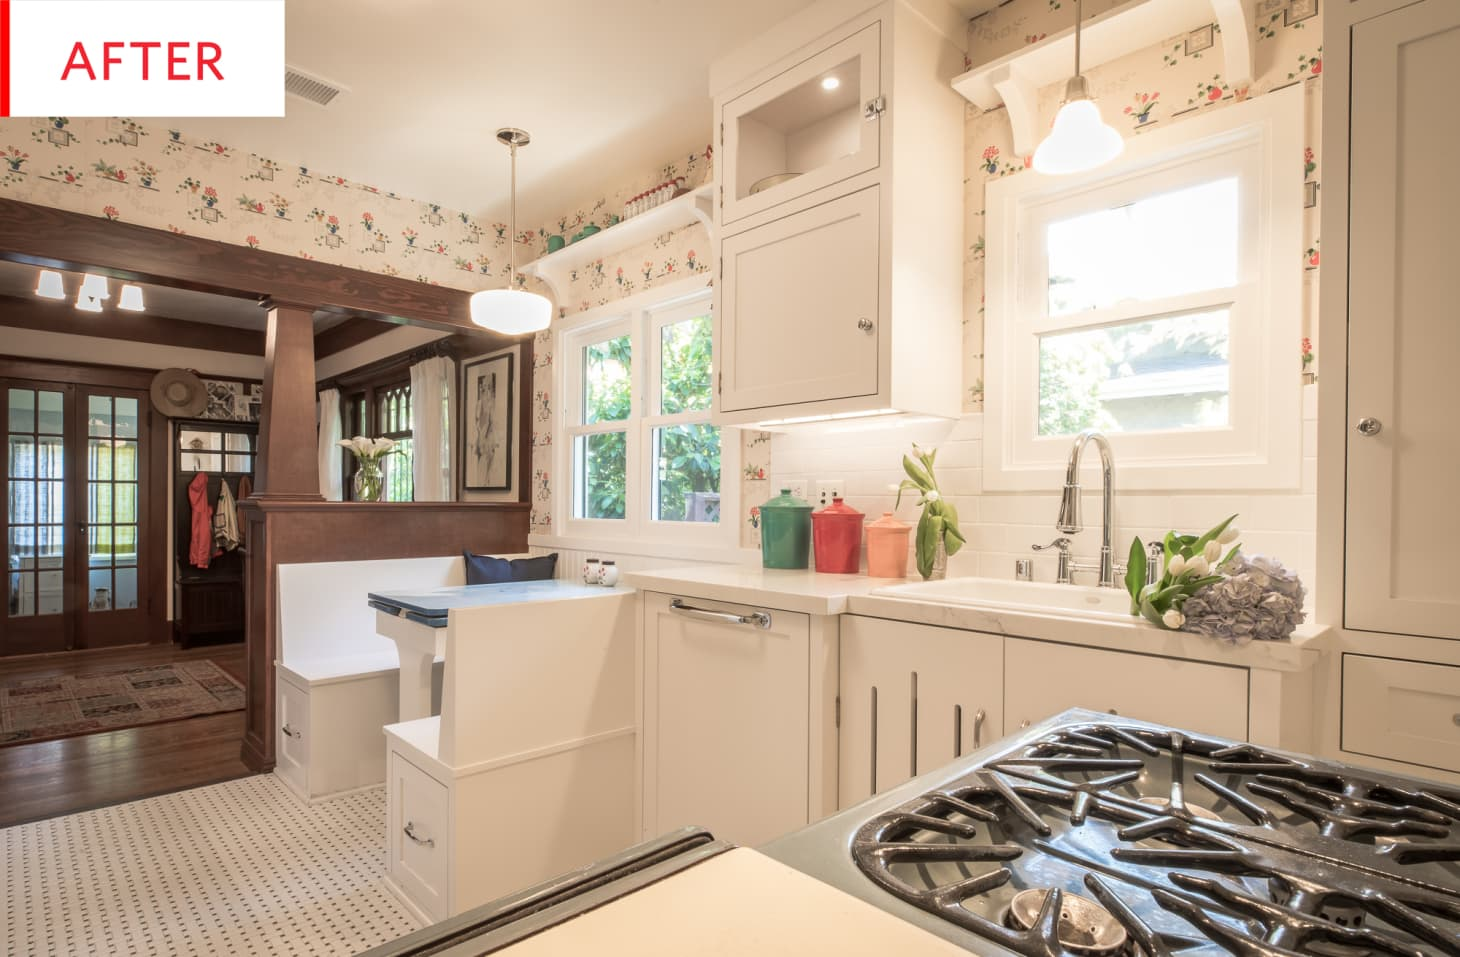 Vintage Kitchen Remodel 1930s and 1940s Decor | Apartment